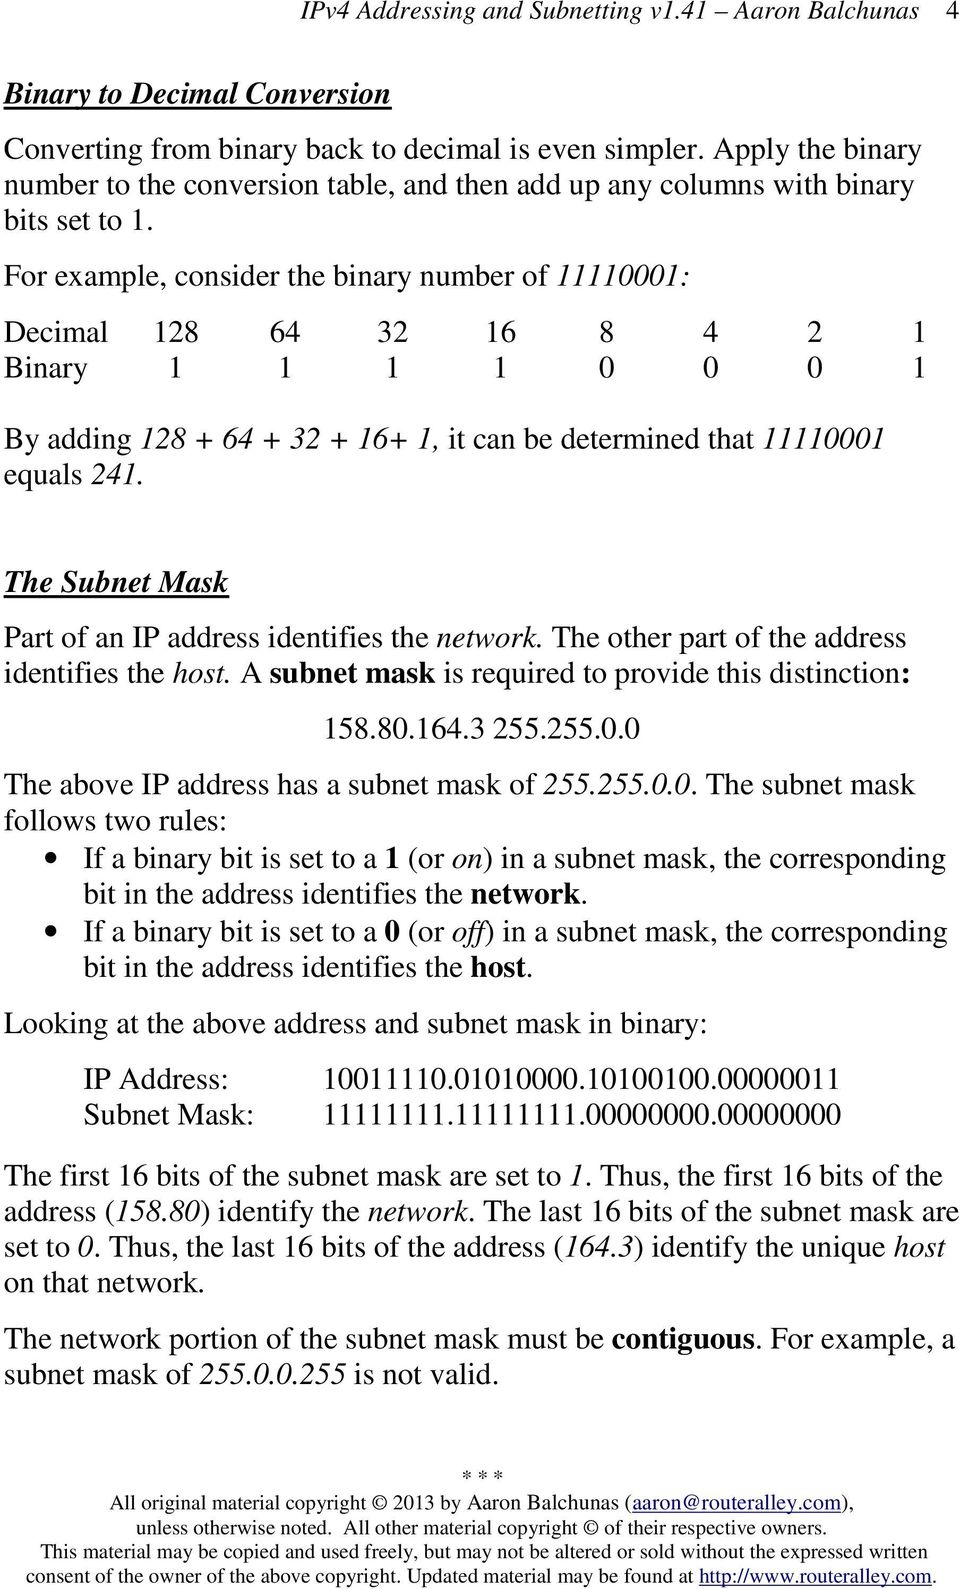 The Subnet Mask Part of an IP address identifies the network. The other part of the address identifies the host. A subnet mask is required to provide this distinction: 158.80.